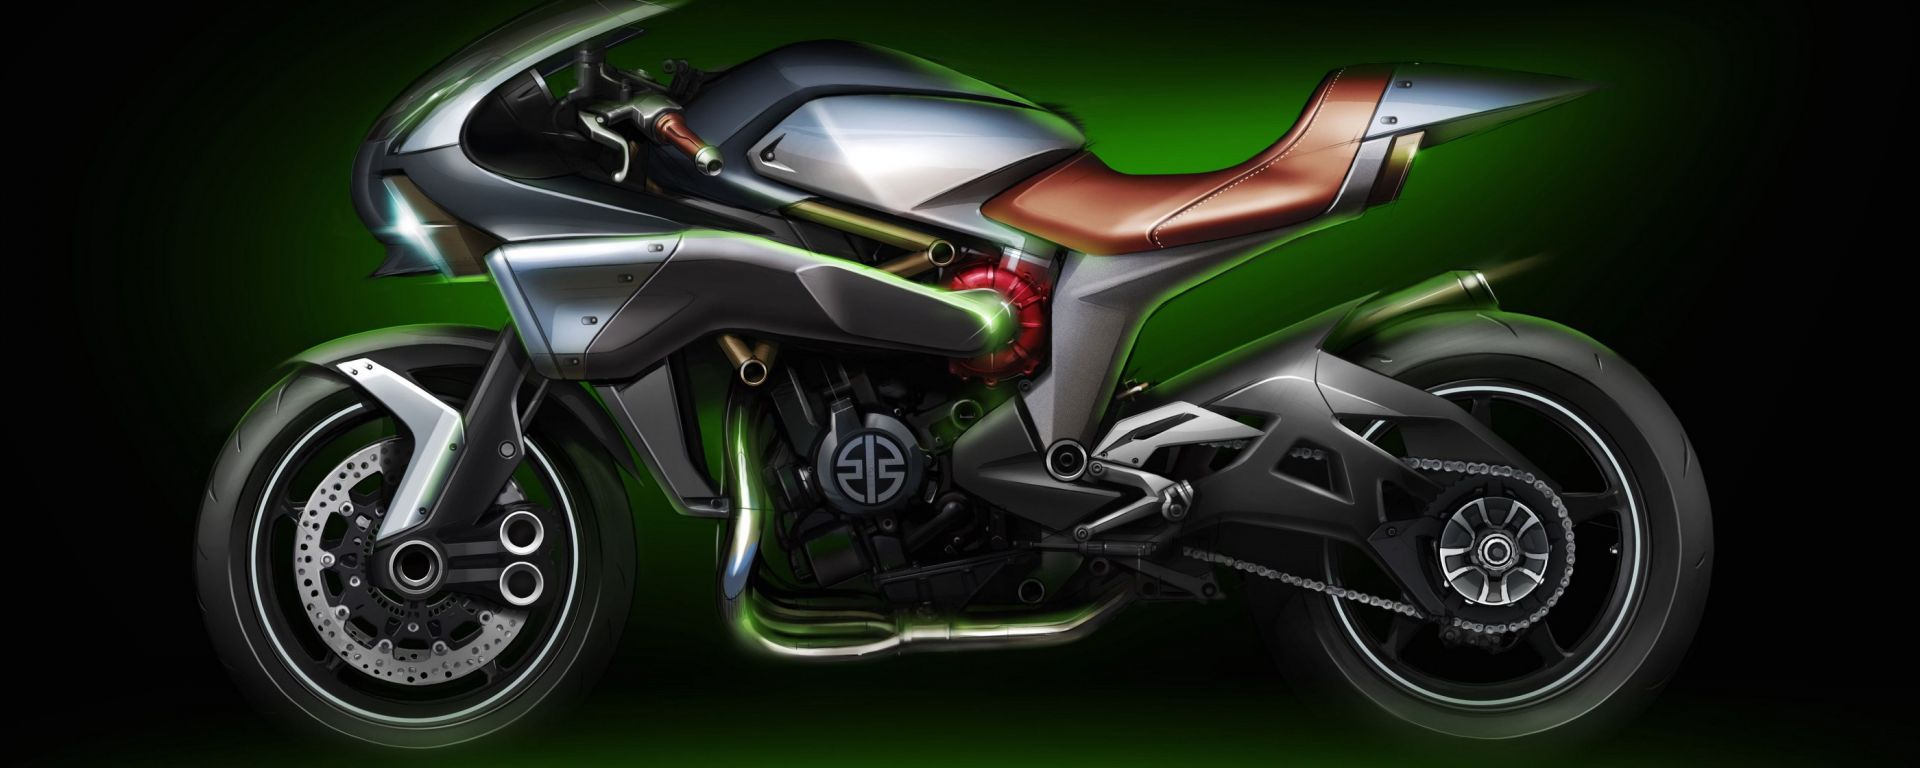 Kawasaki Supercharger e Rideology